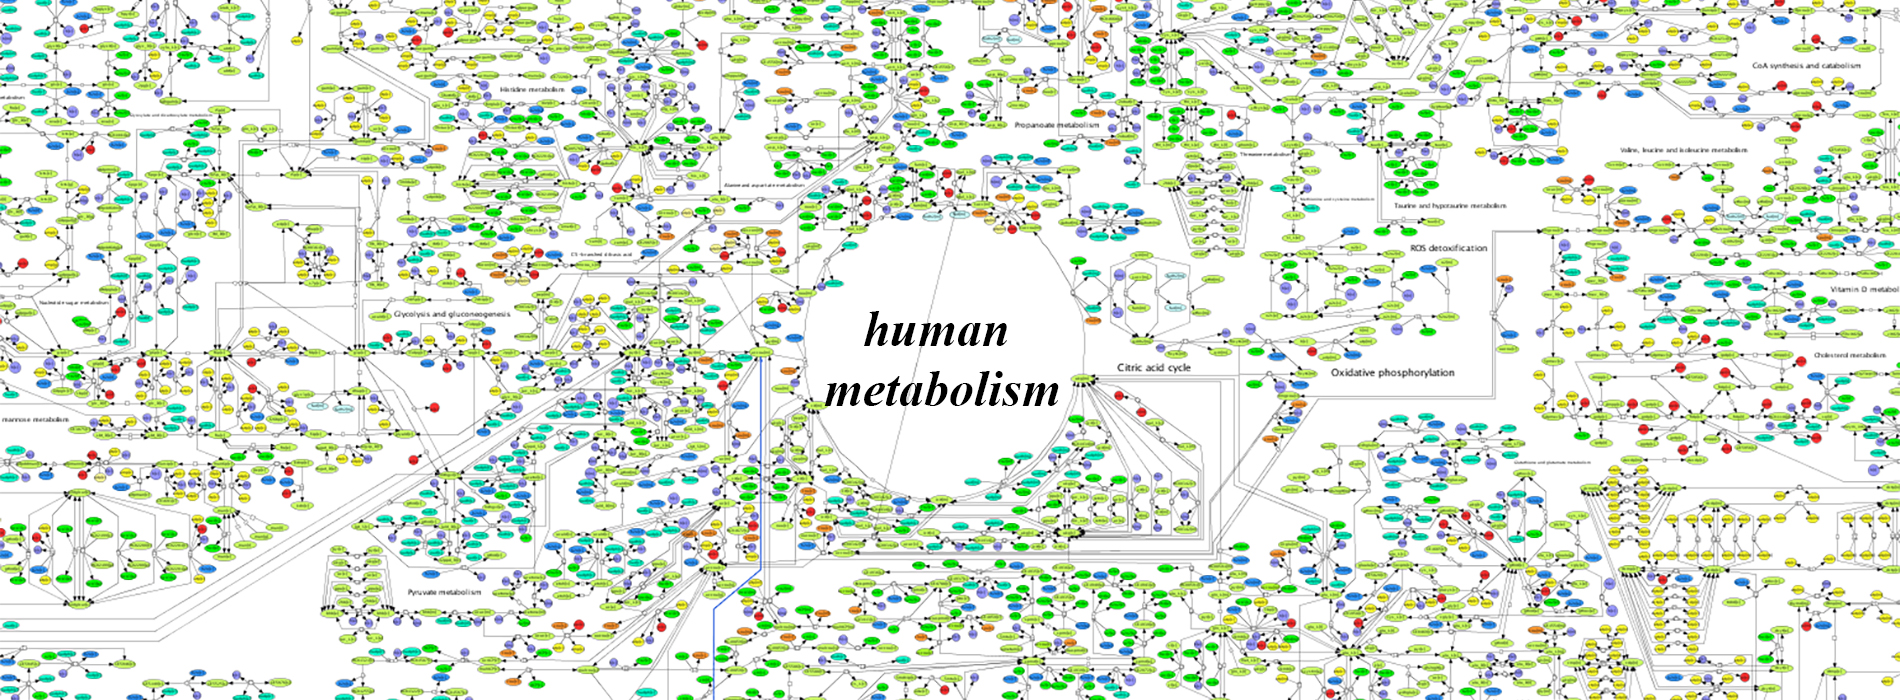 Human metabolism. Menopause changes the balance in our systems and must be reflected by new eating ias we lose weight.